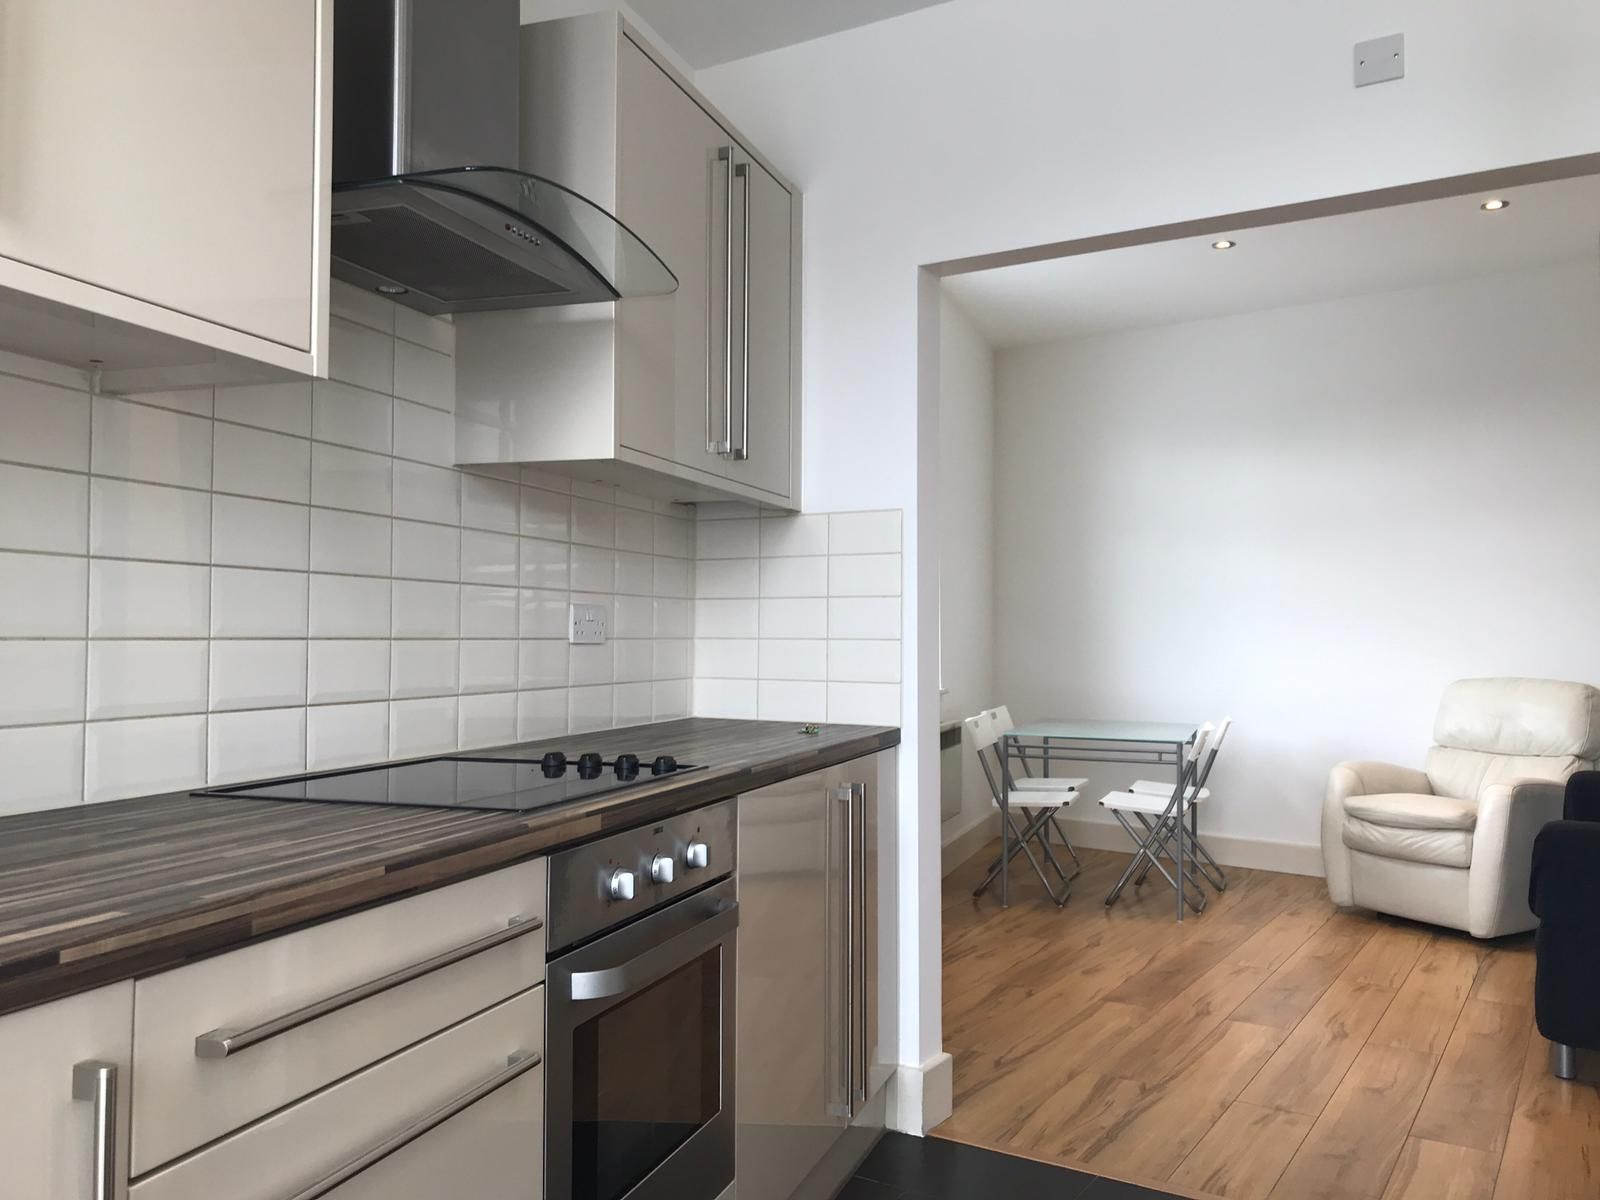 2 bedroom flat flat/apartment To Let in Willesden Green - OPEN PLAN KITCHEN/LIVING ROOM